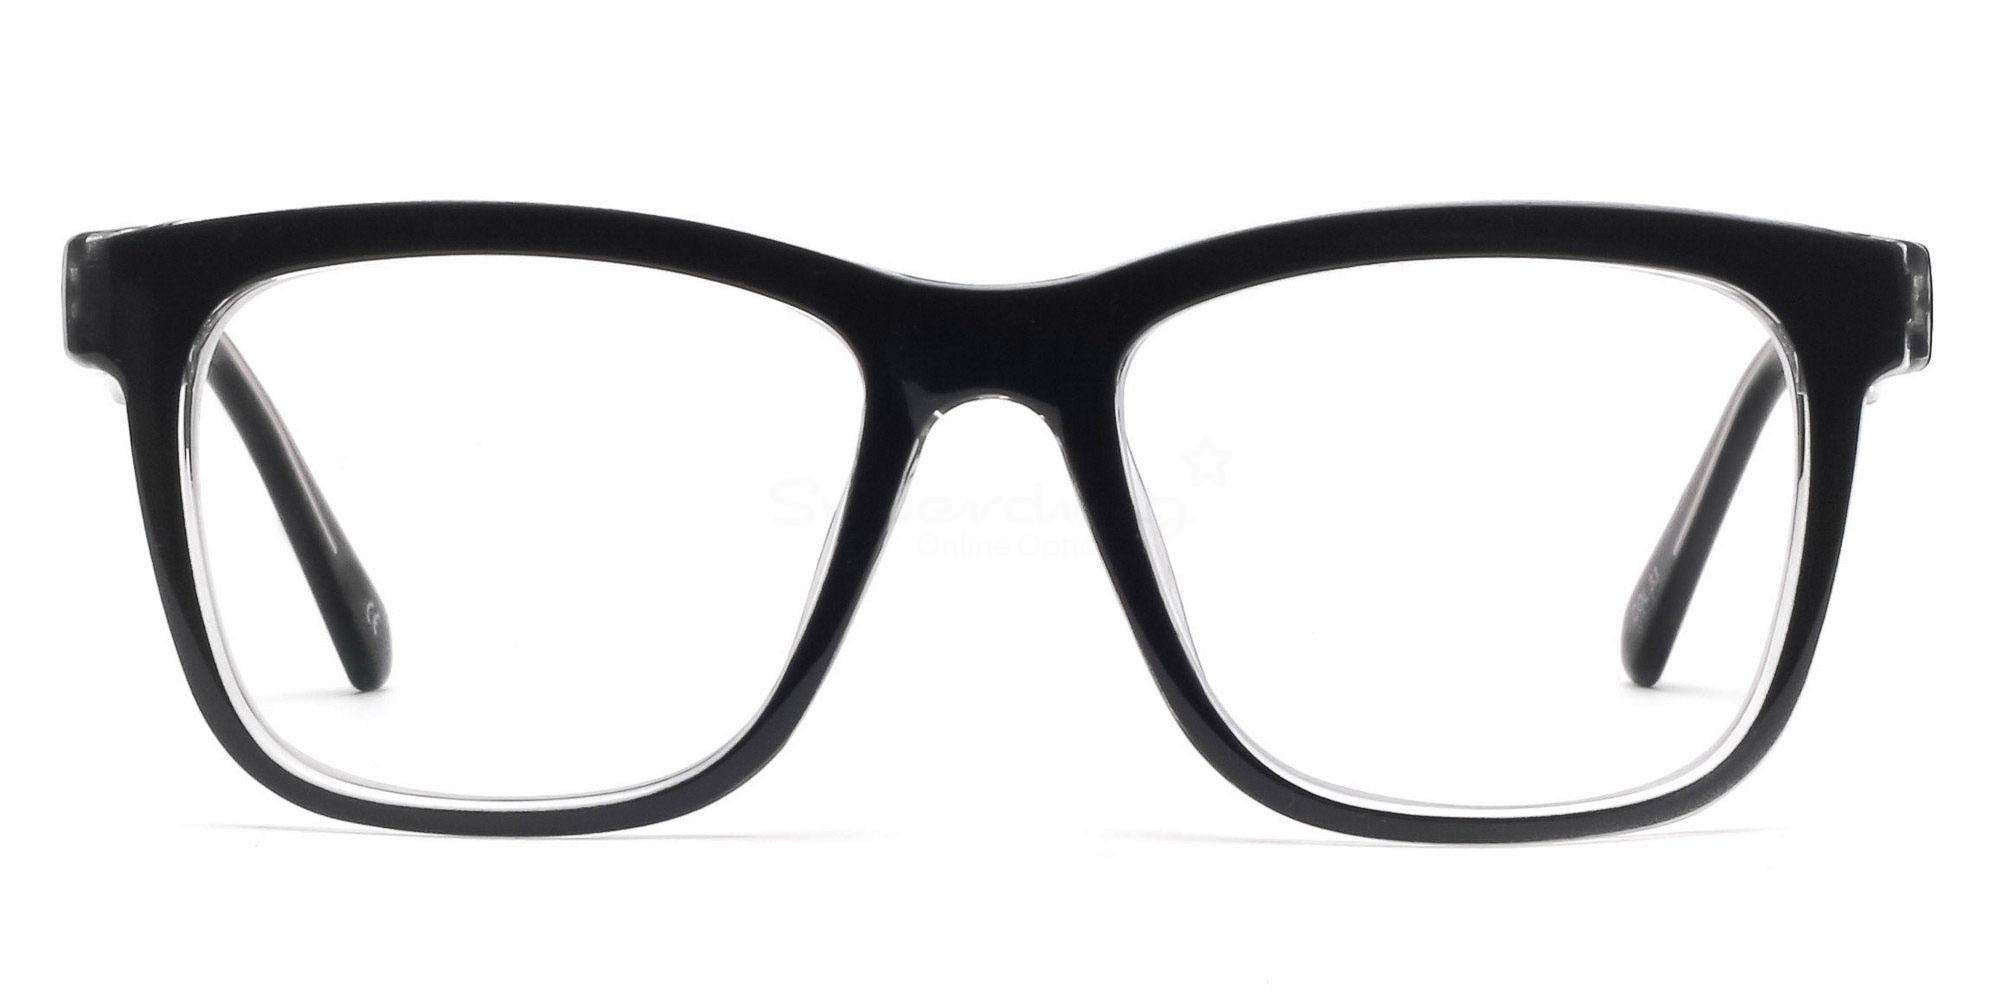 C33 2444 - Black and Clear Glasses, Helium